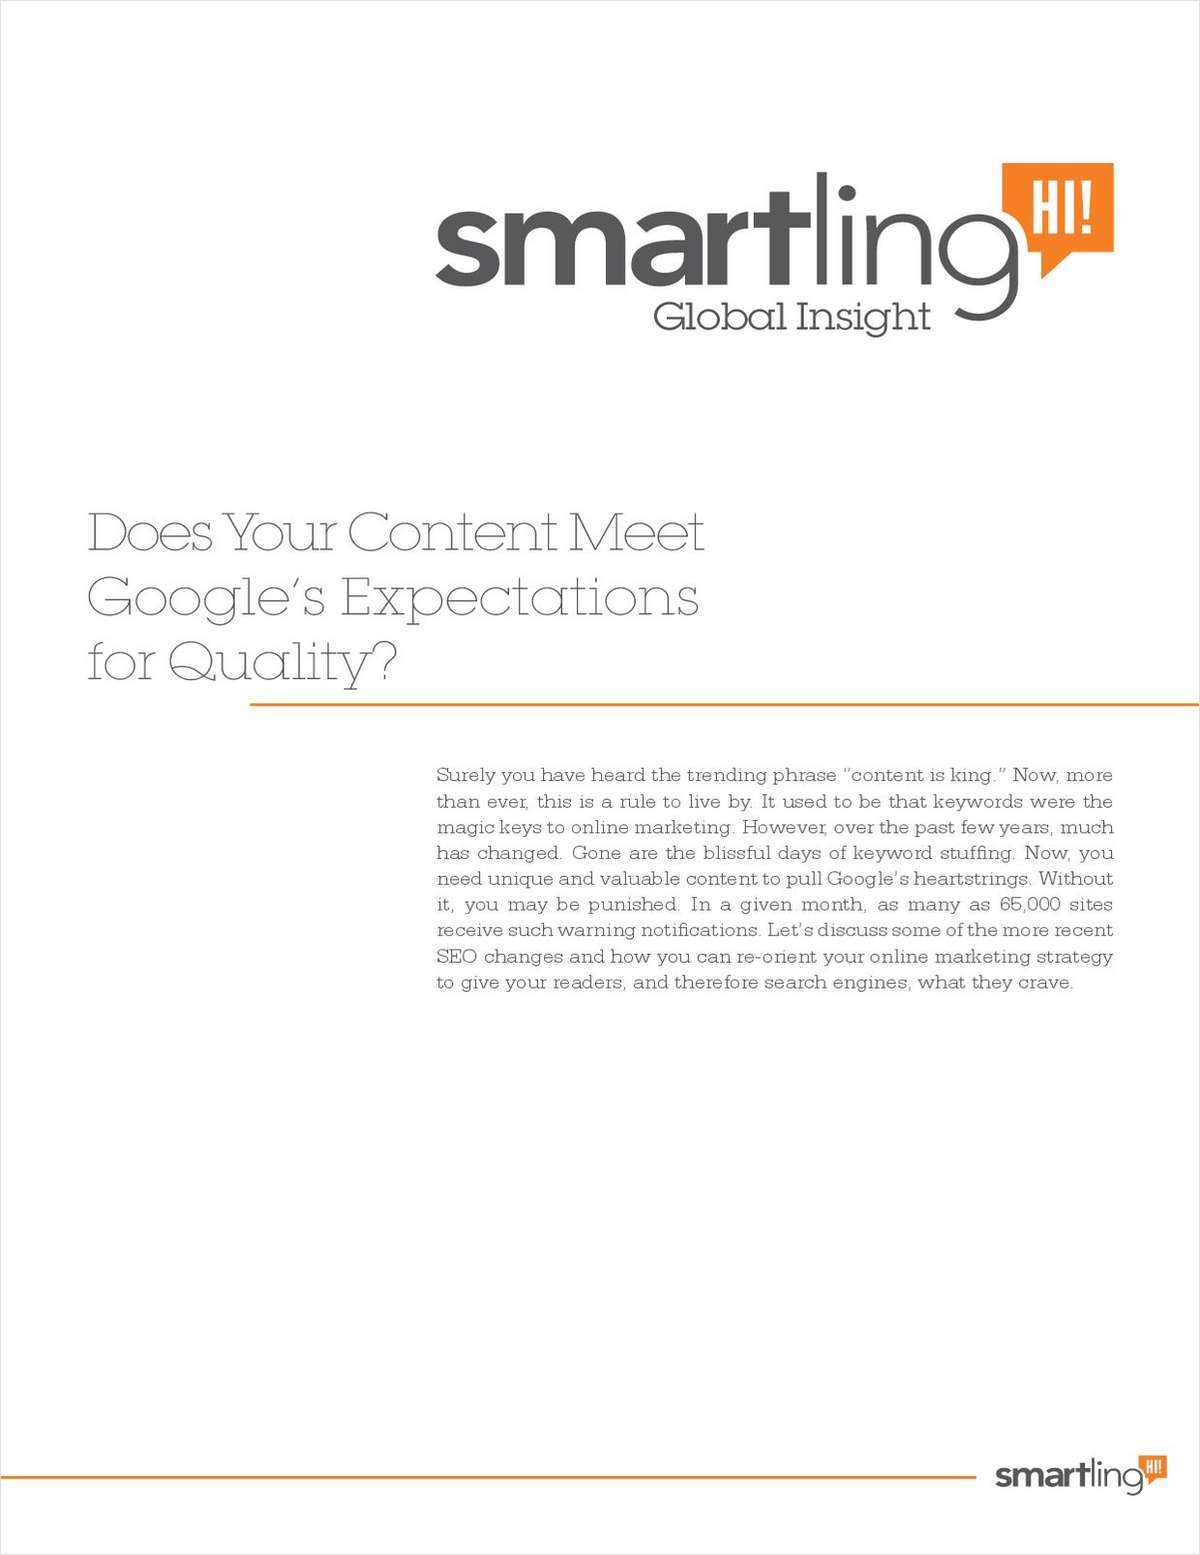 Does Your Content Meet Google's Expectations for Quality?